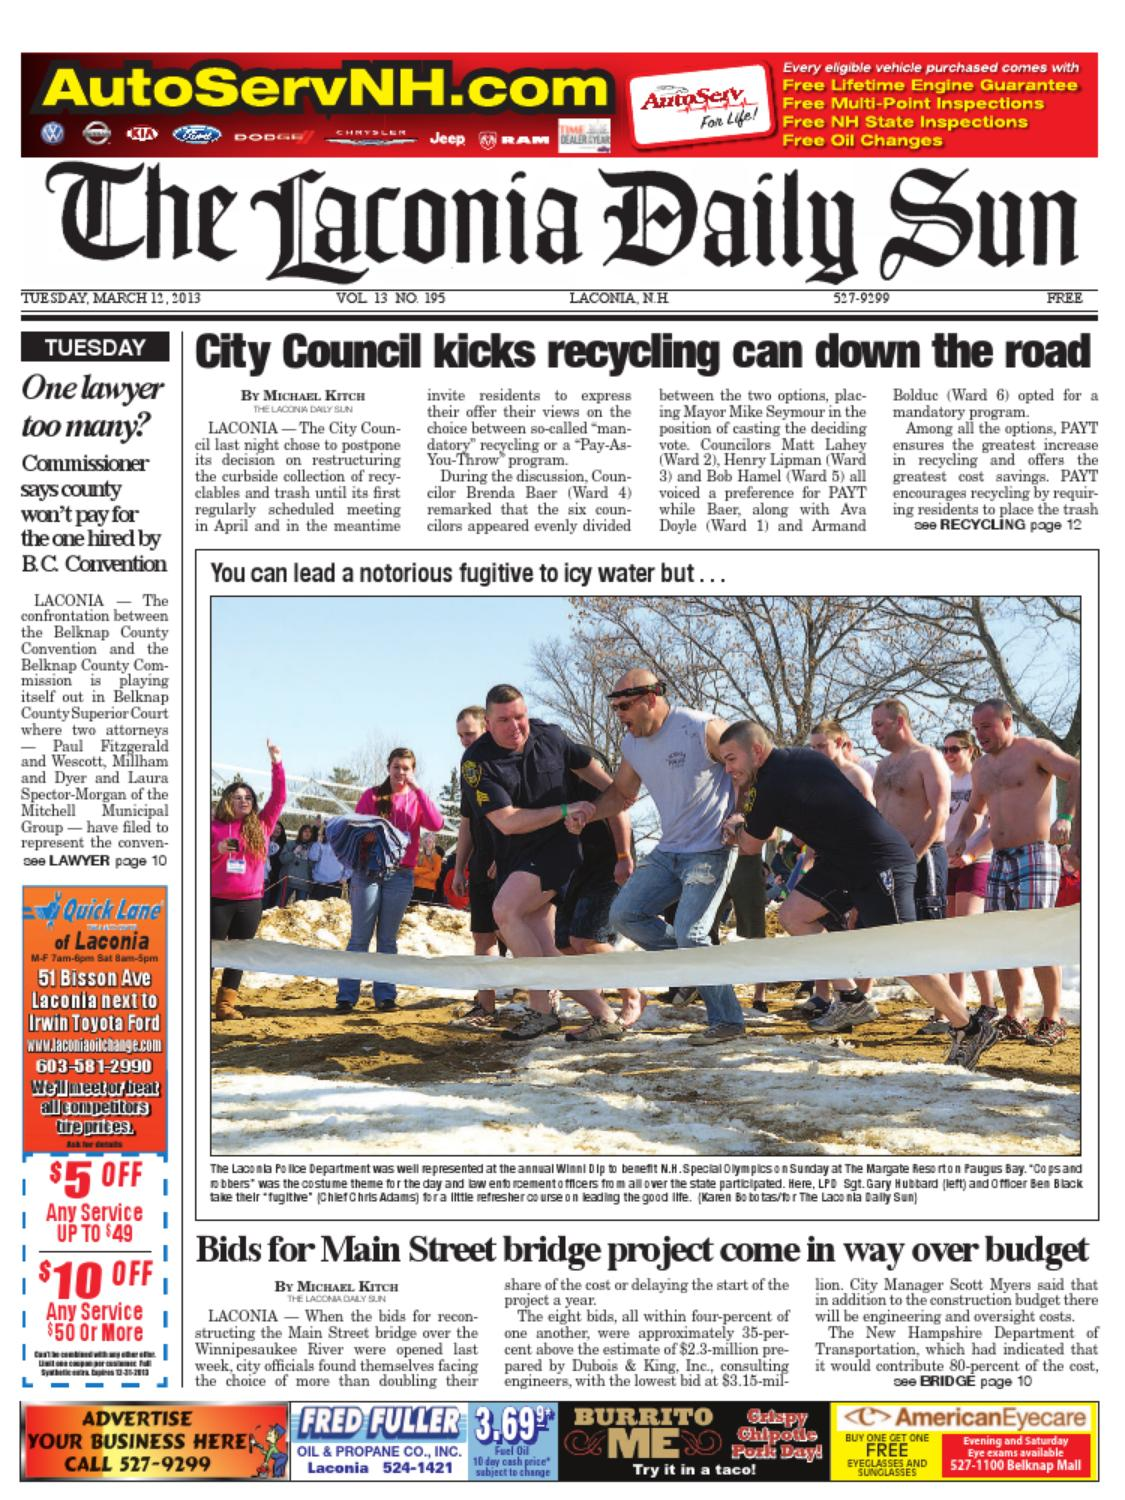 The Laconia Daily Sun March 12 2013 By Daily Sun Issuu